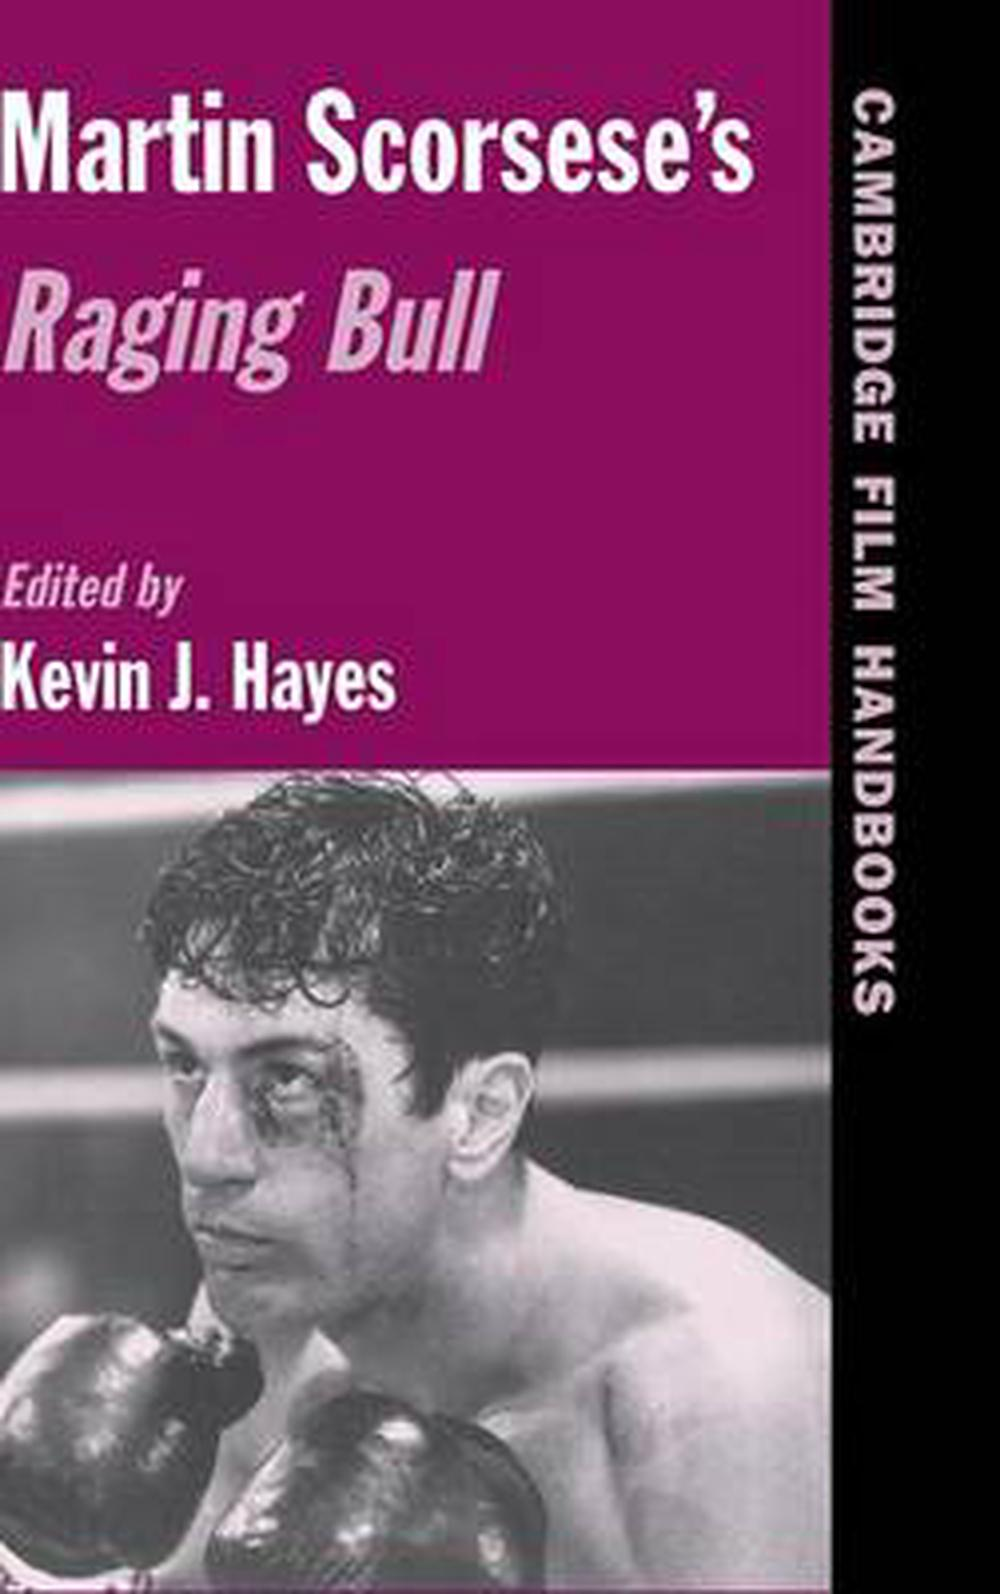 Martin Scorsese U0026 39 S Raging Bull By Kevin J  Hayes  English